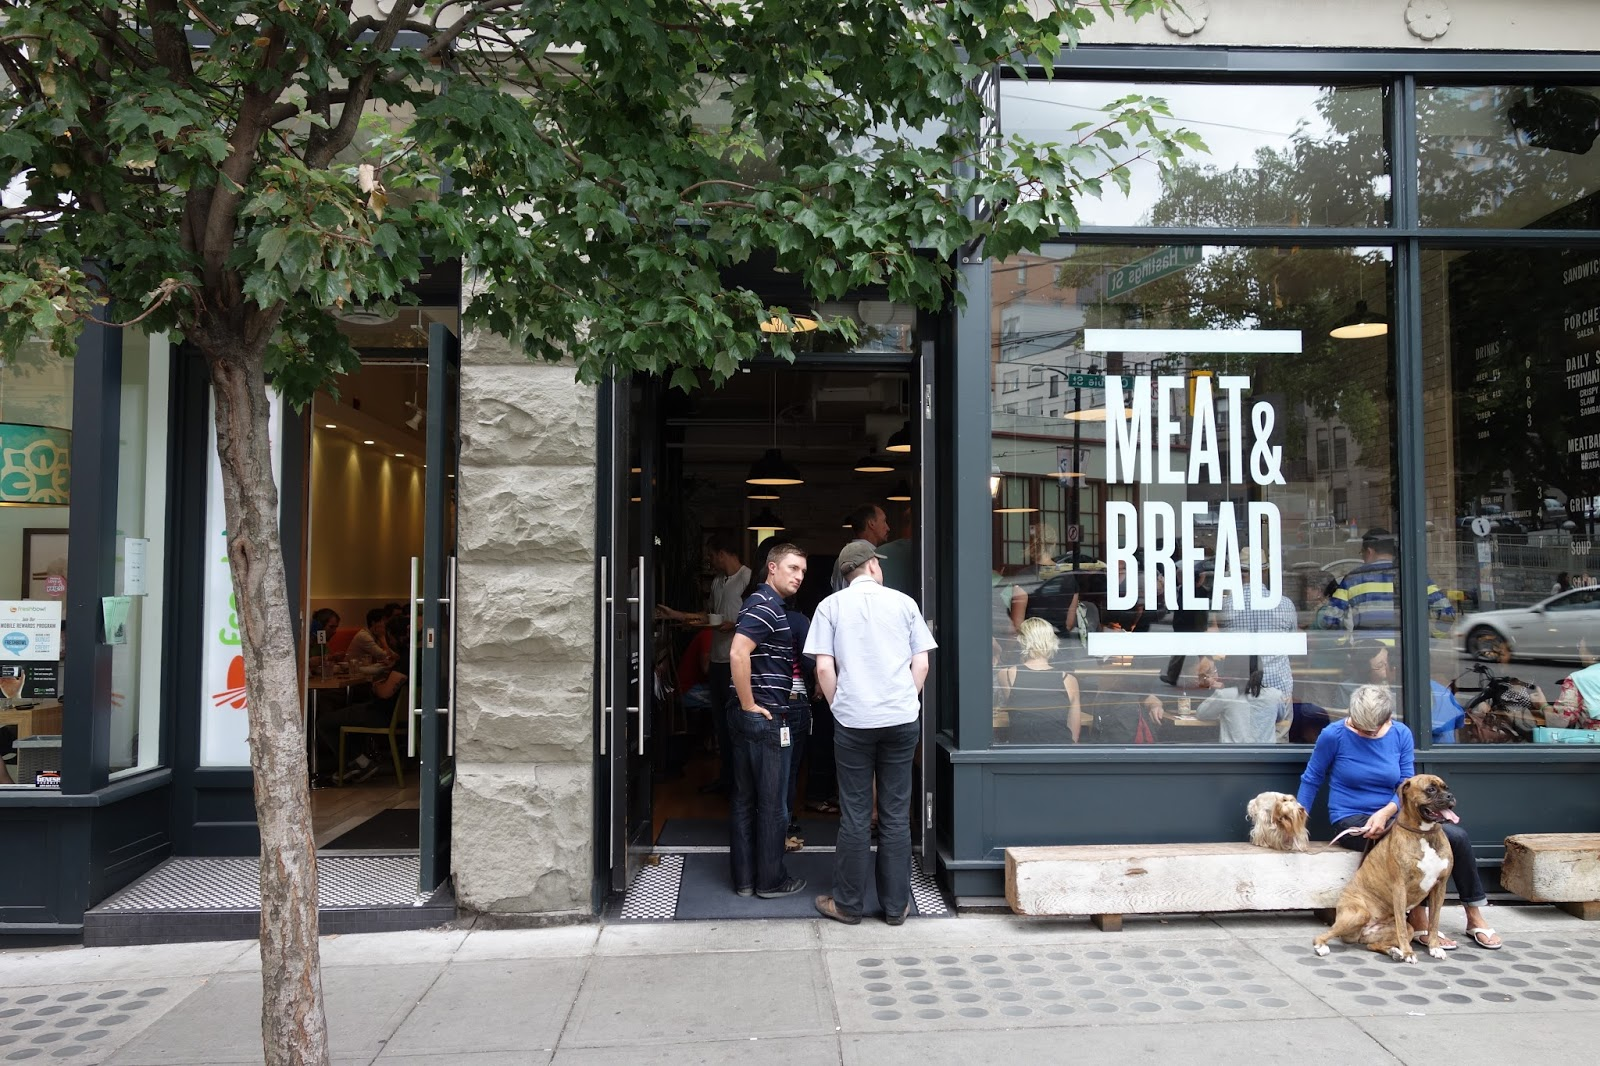 Meat and Bread Storefront 3 ITCHBAN.com